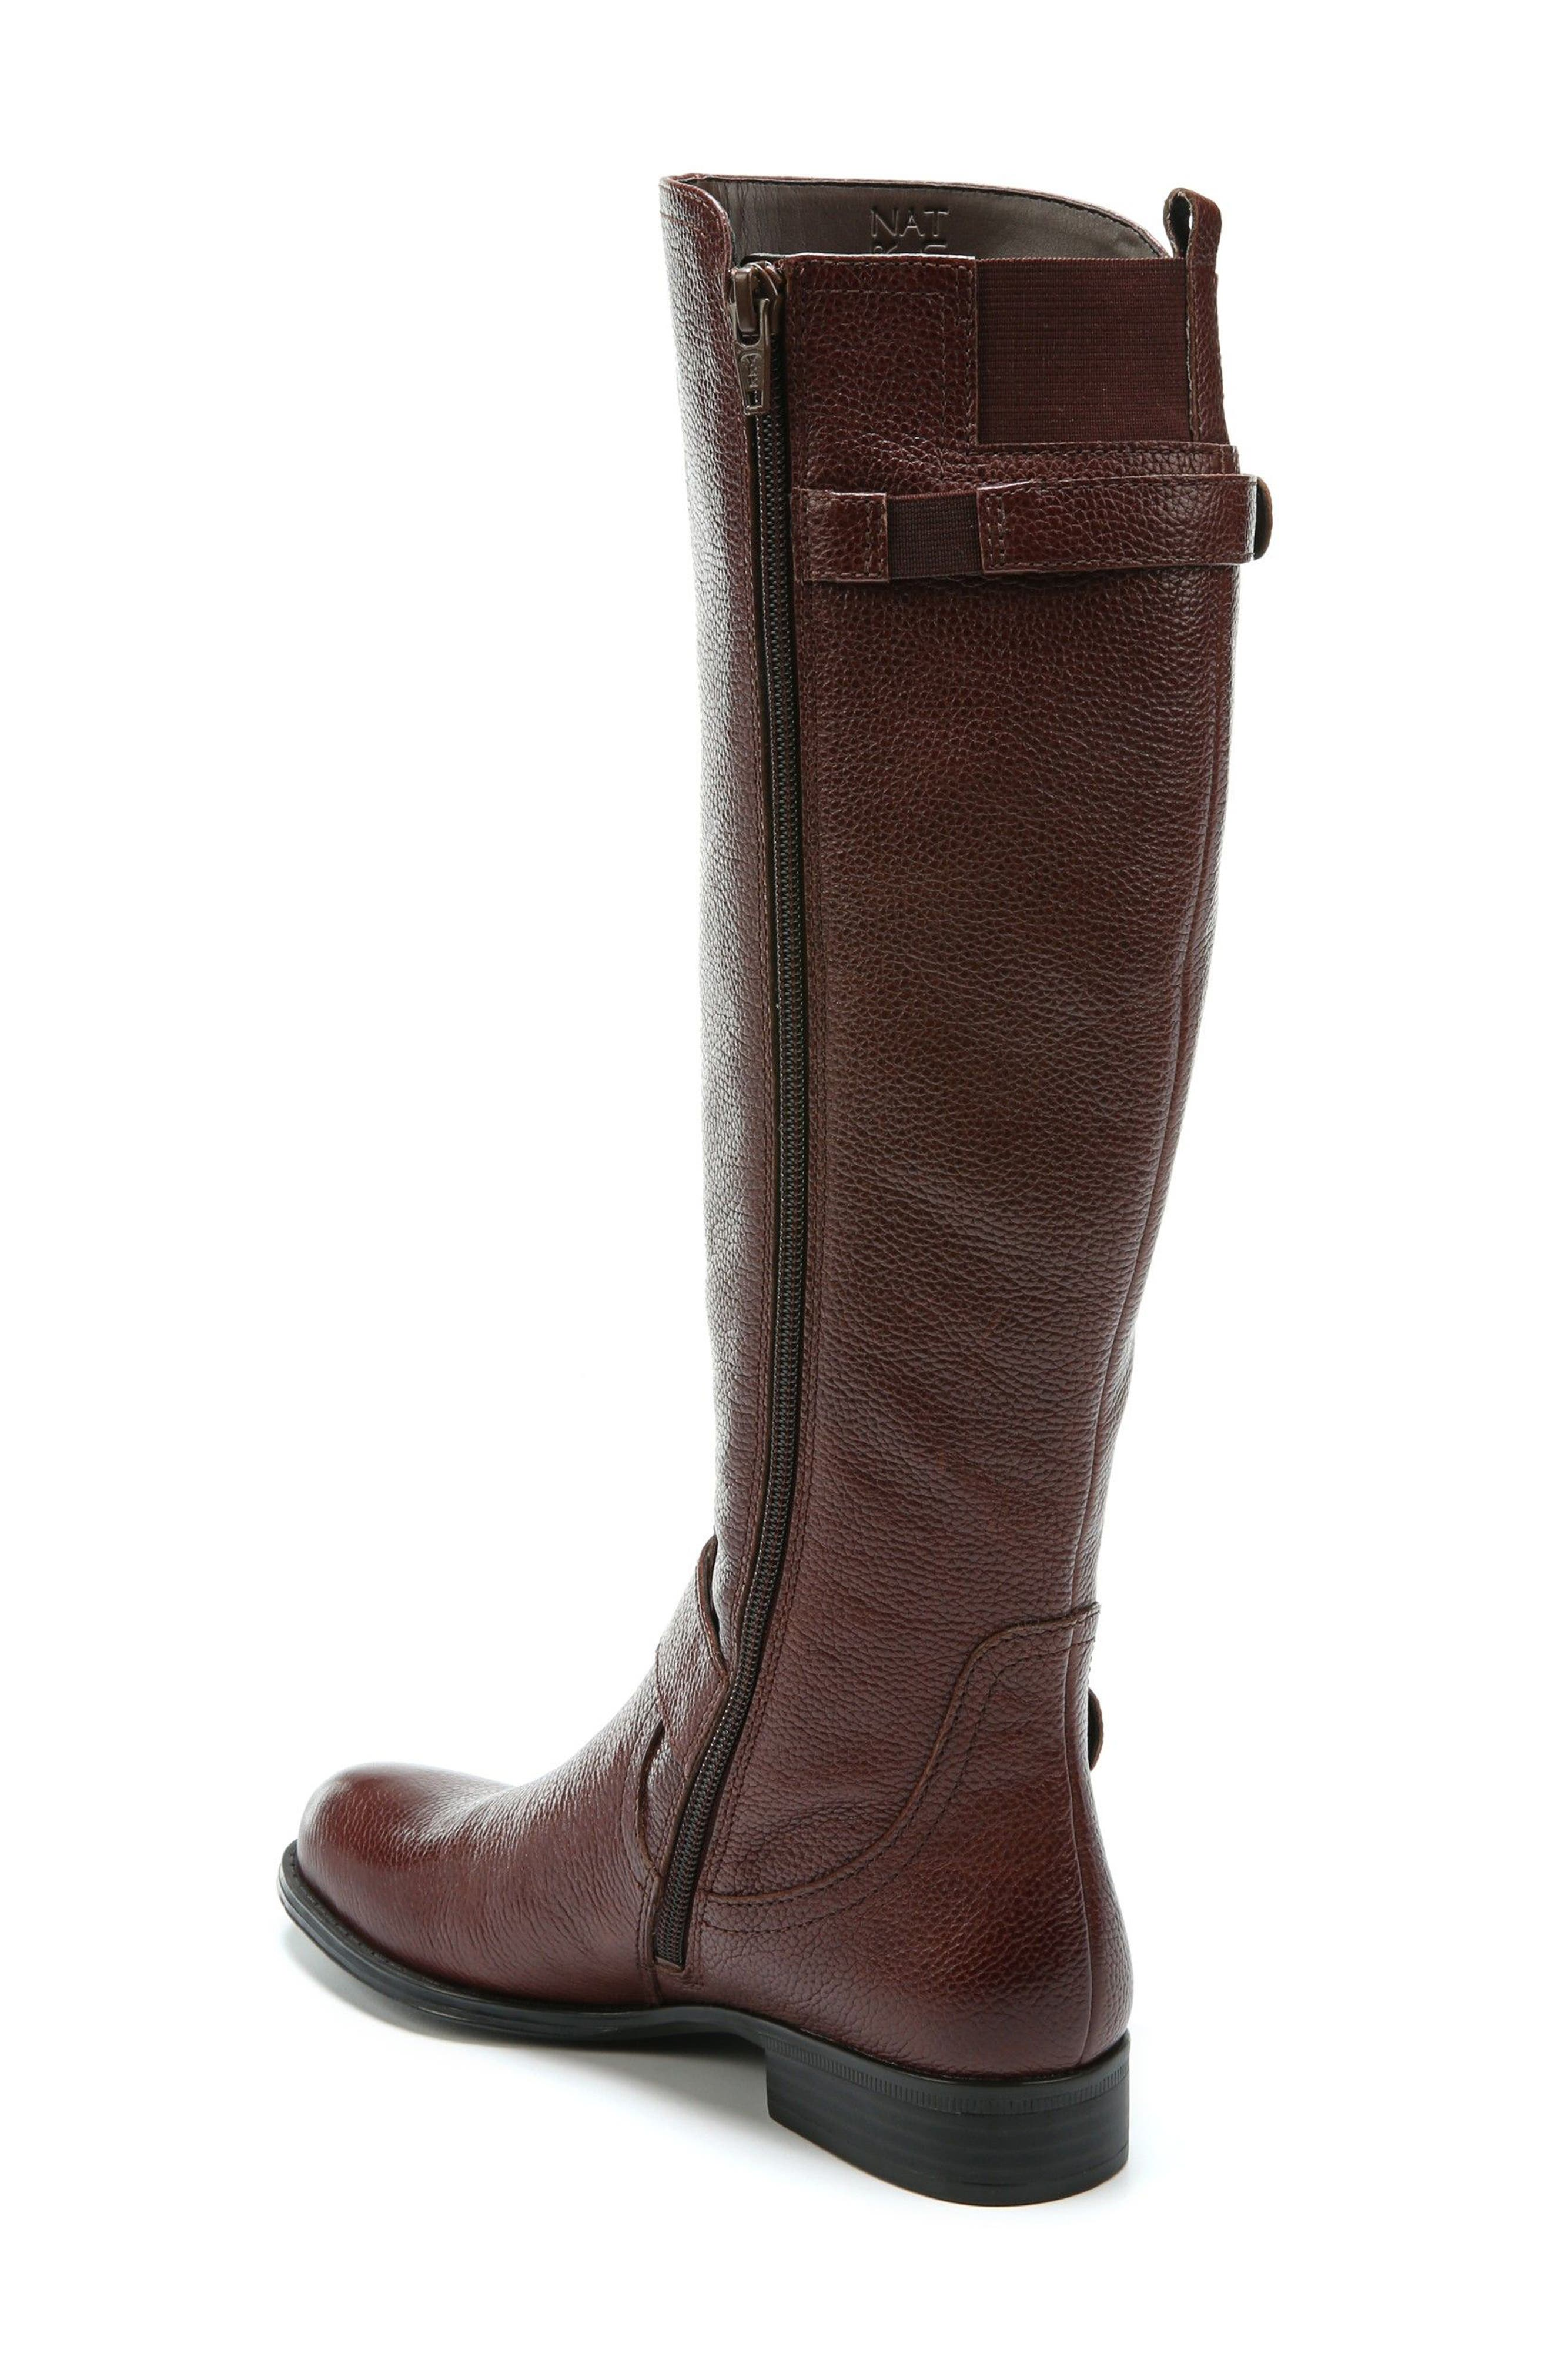 Jenelle Tall Boot,                             Alternate thumbnail 2, color,                             Brown Leather